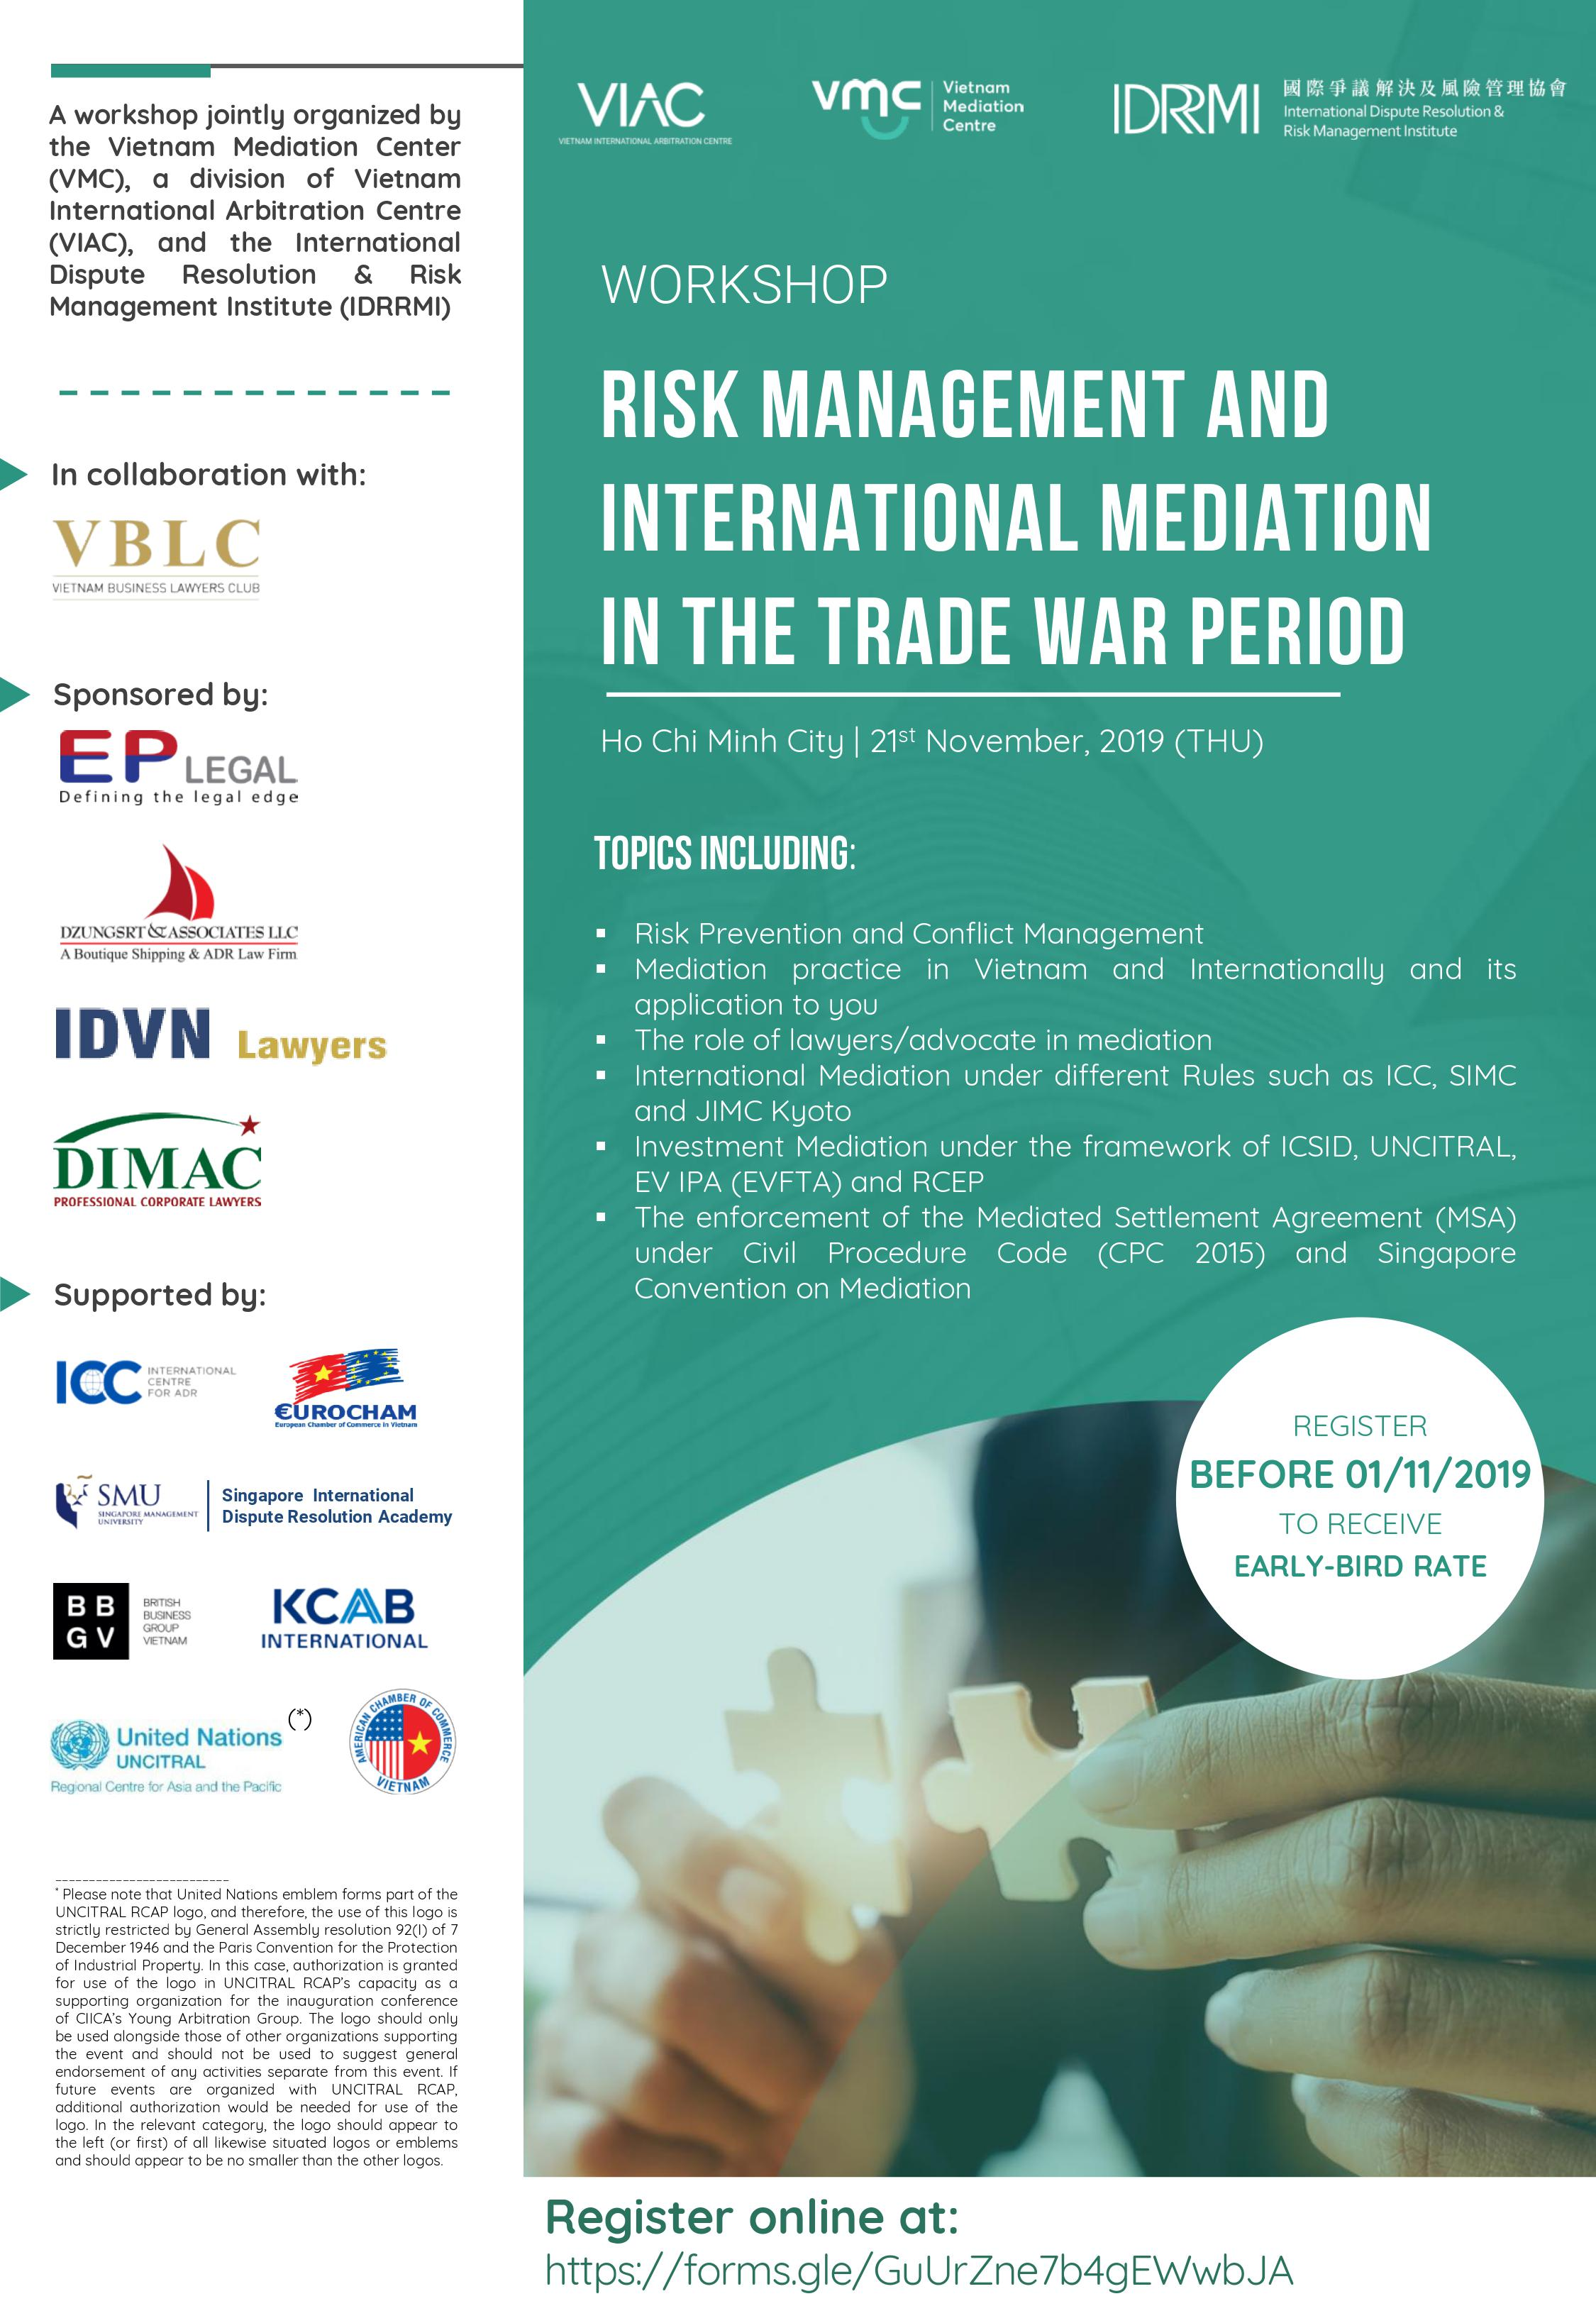 Risk Management and International Mediation in the Trade War Period